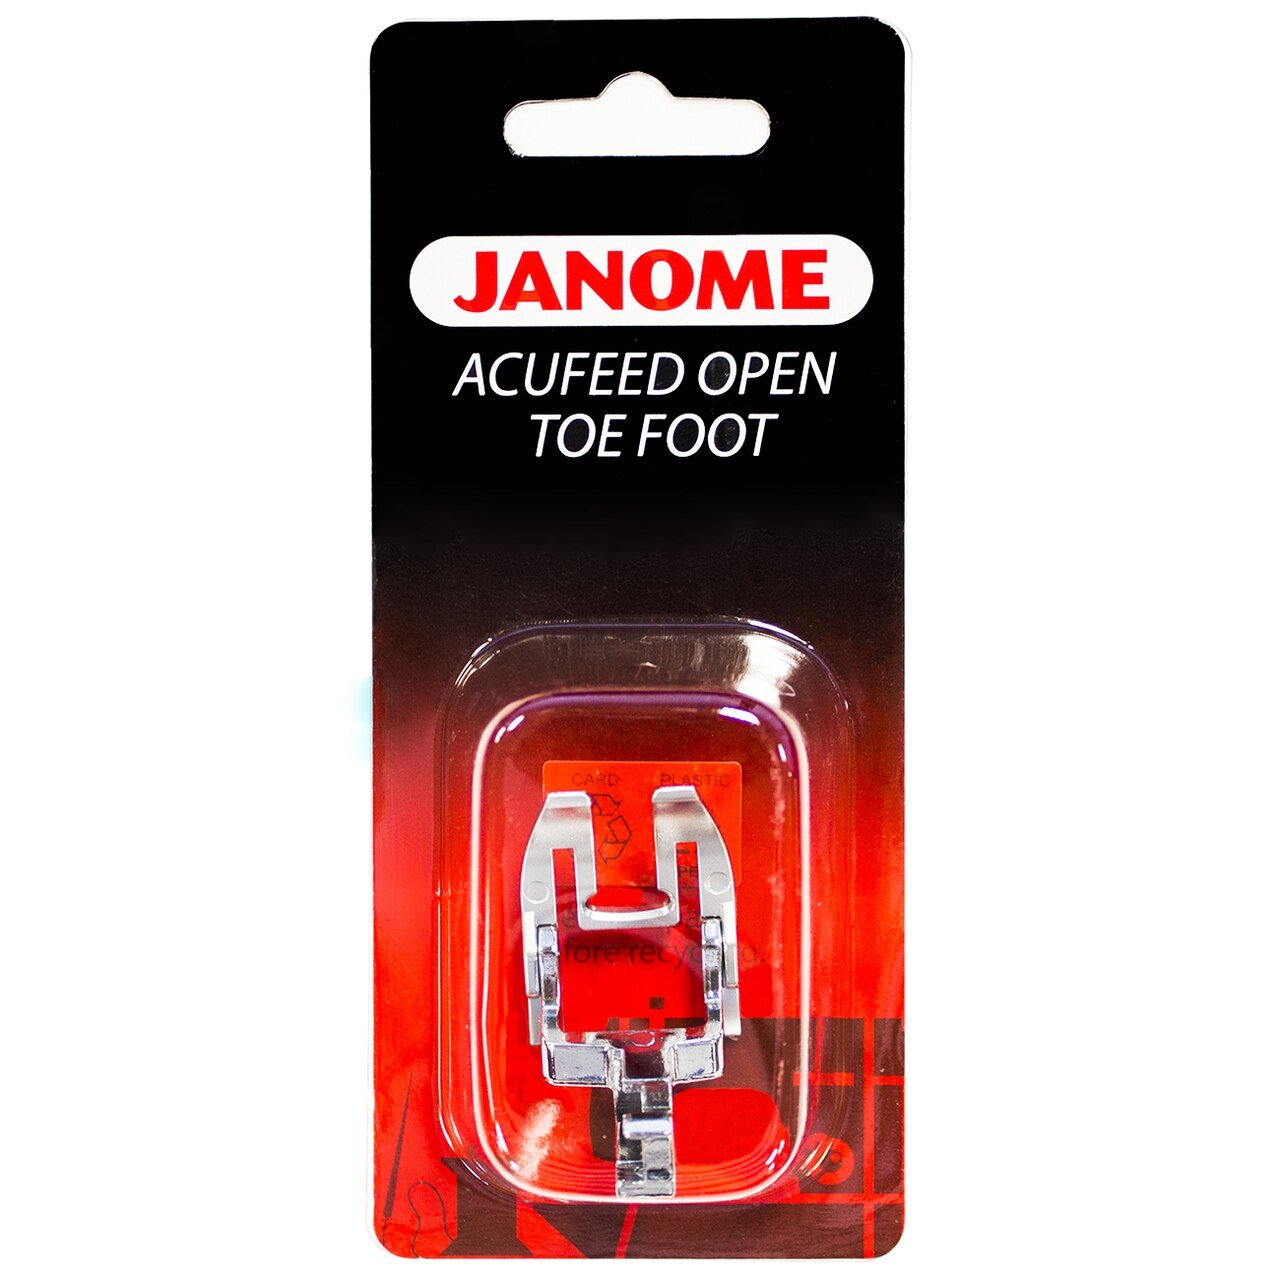 Janome AcuFeed Open Toe Satin Stitch Foot 7mm - 846410003